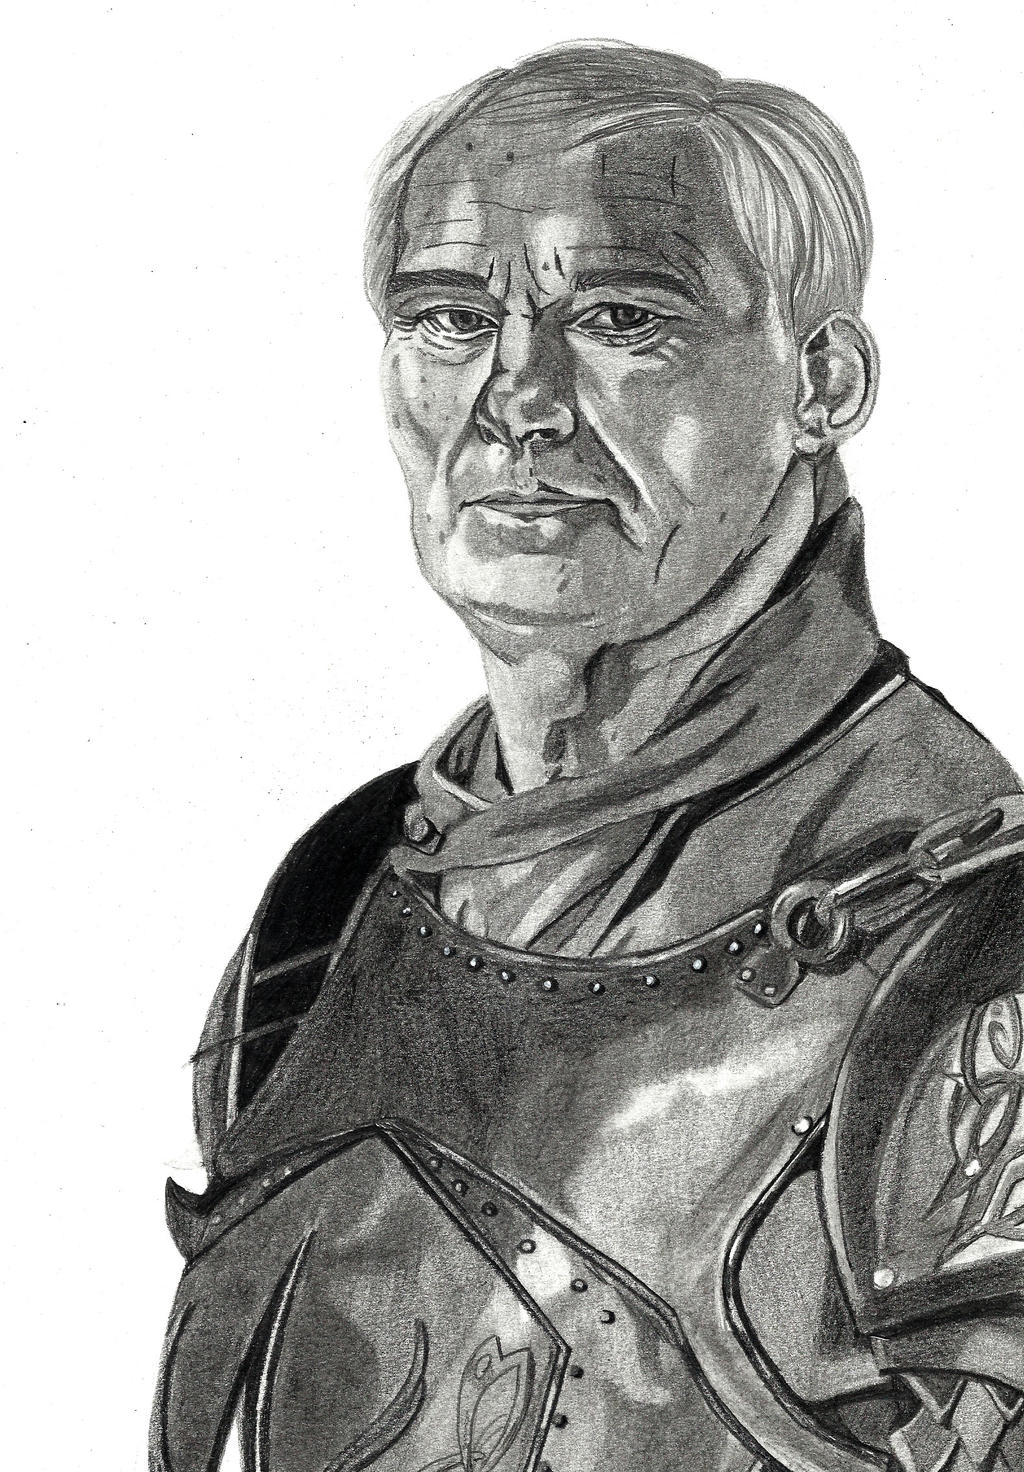 barristan the bold by cssp on deviantart